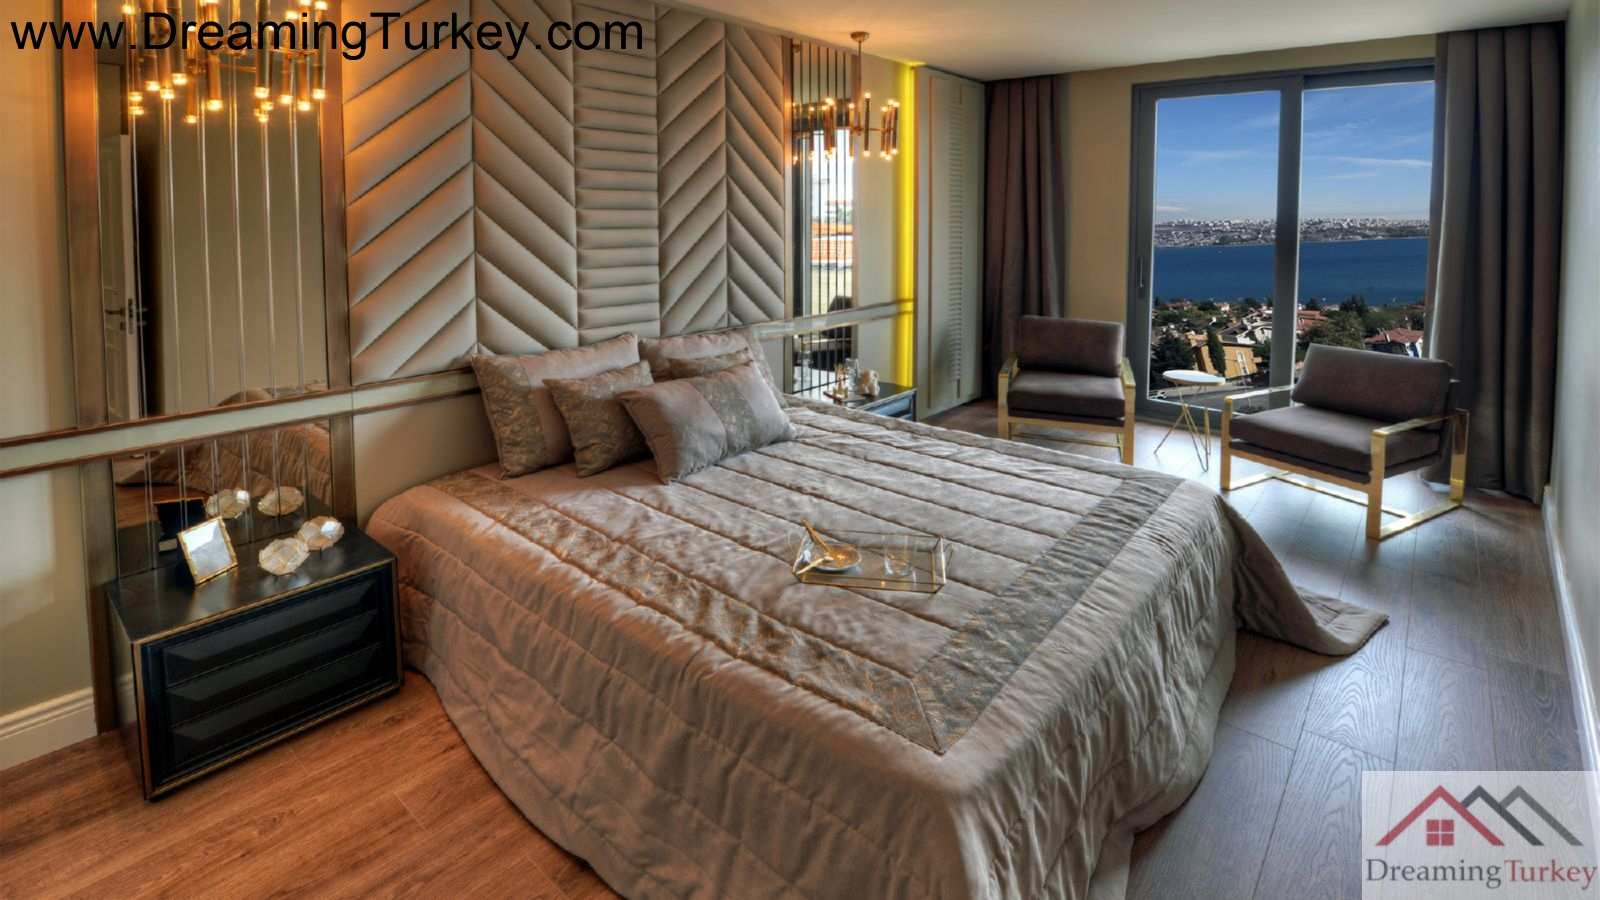 4-Bedroom Apartment with a Sea View in a Modern Complex